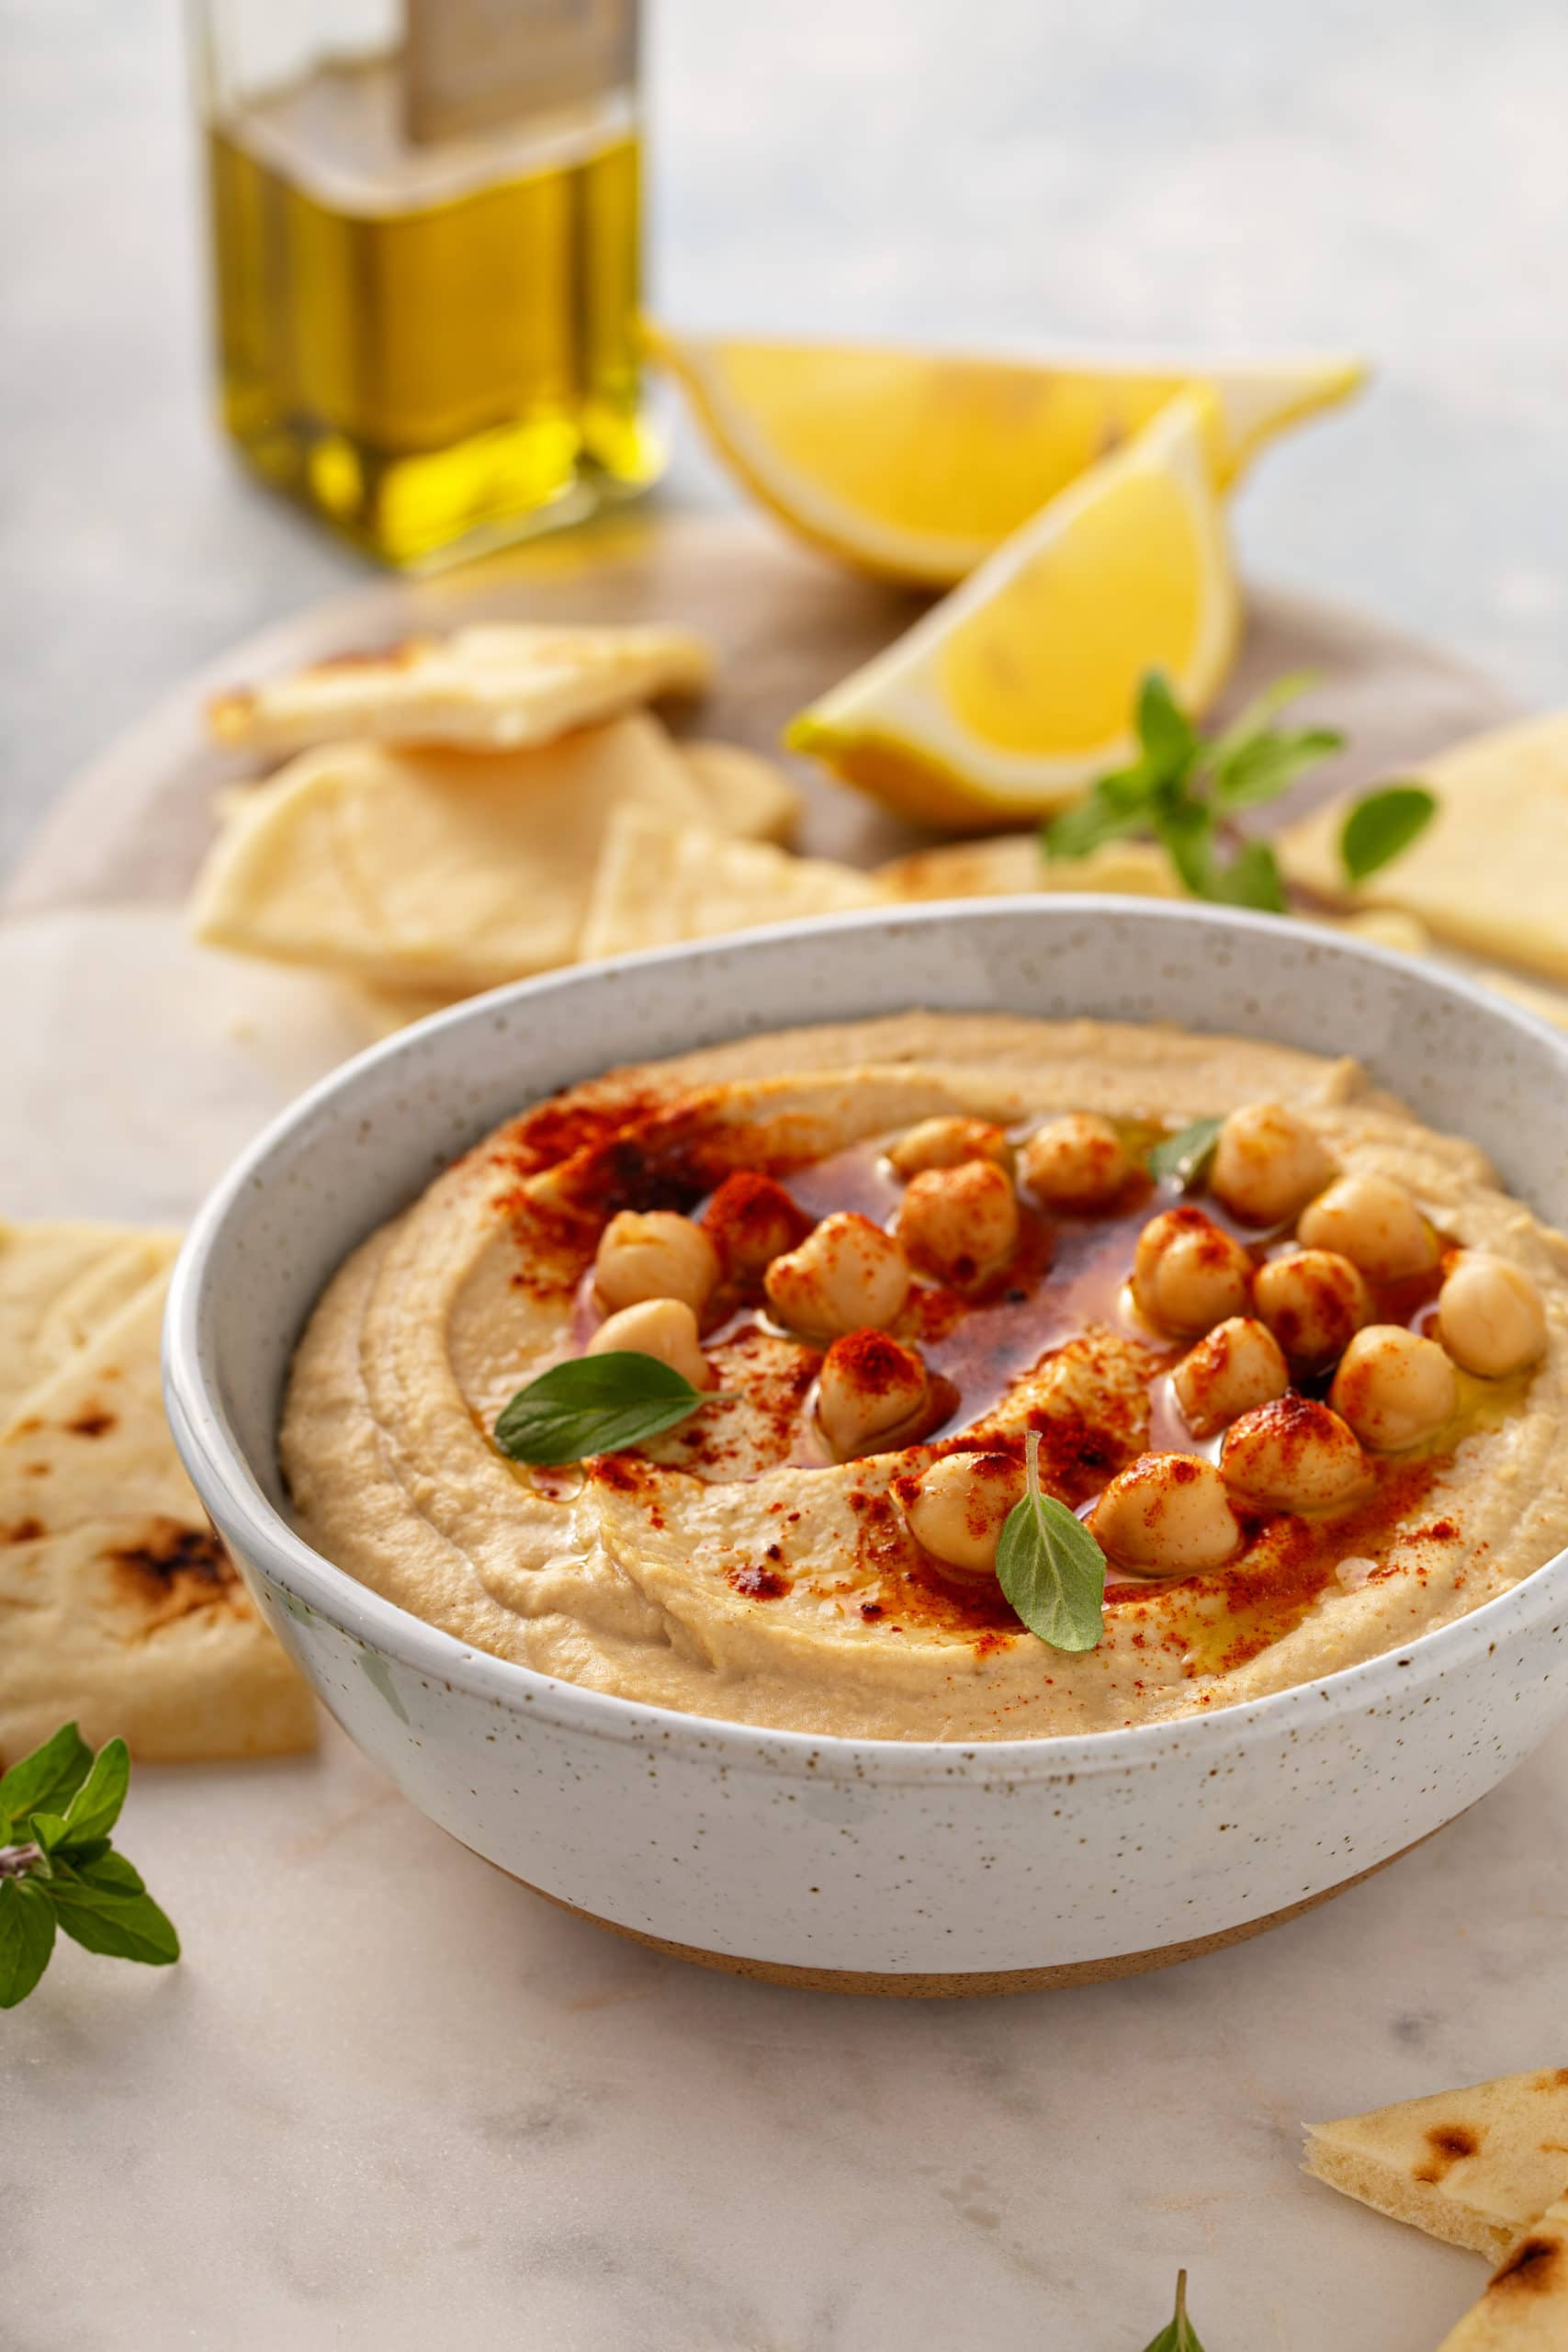 A bowl of hummus with whole chick peas and smoked paprika on top, and lemon wedges and pieces of tortilla in the background.